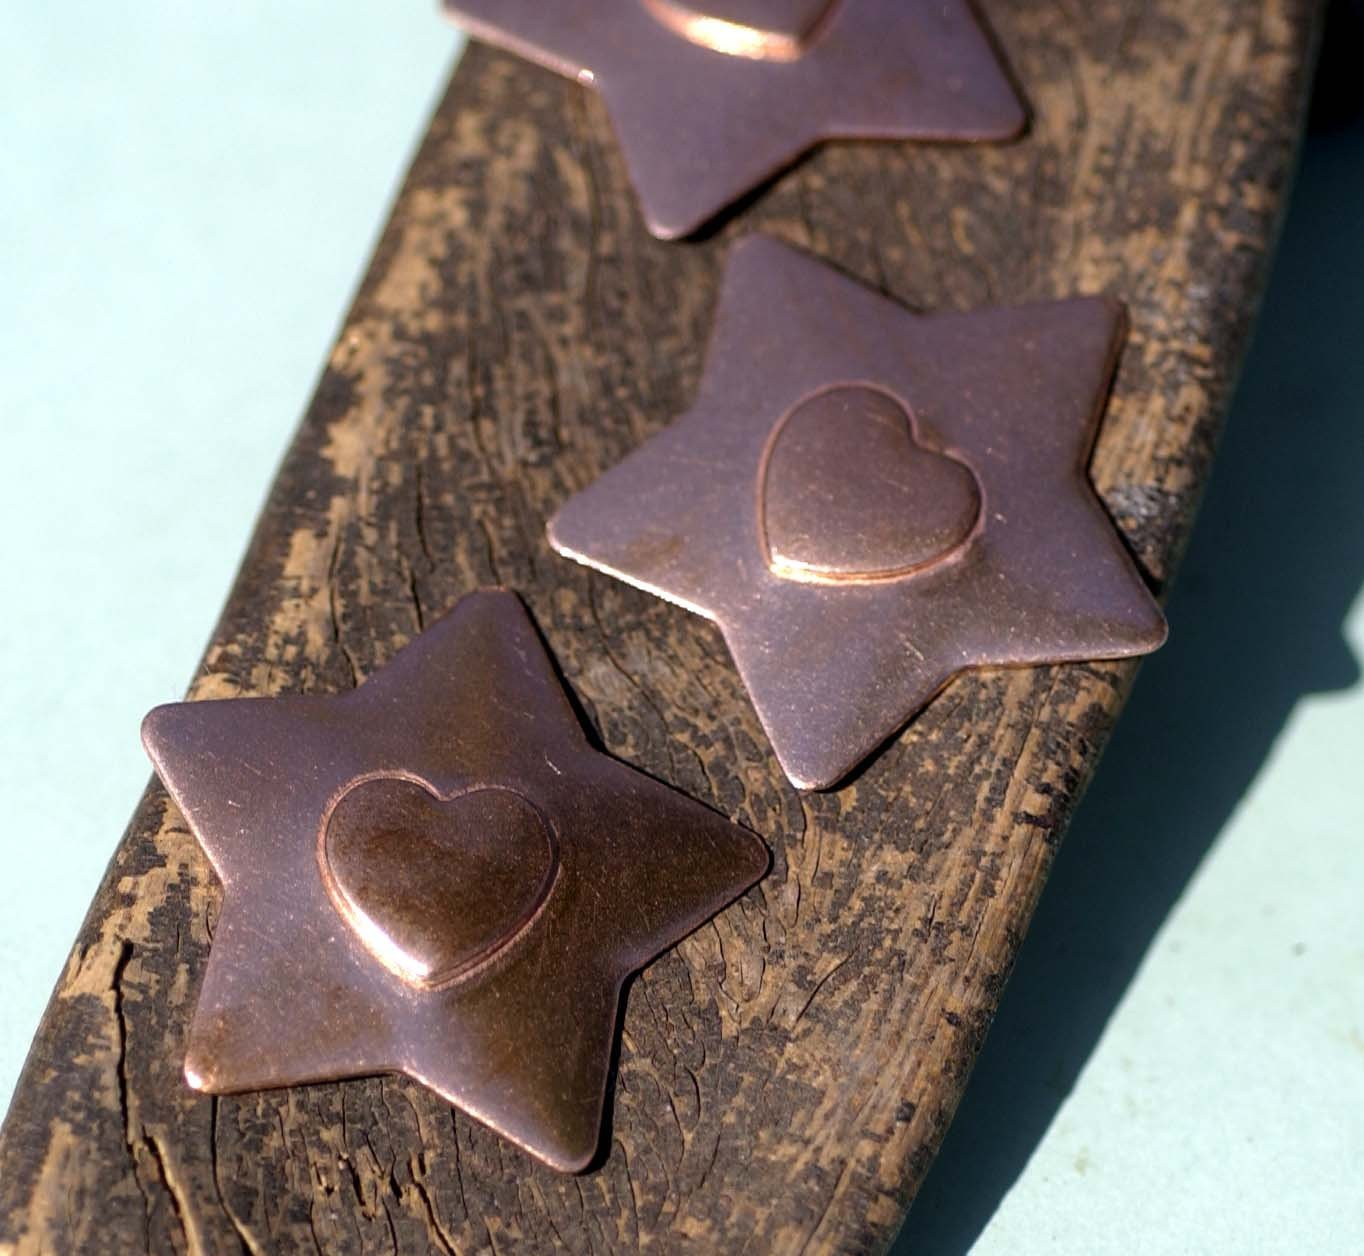 30mm Star with Heart Embossed Blank Cutout for Enameling Stamping Texturing Metalworking Jewelry Making Blanks